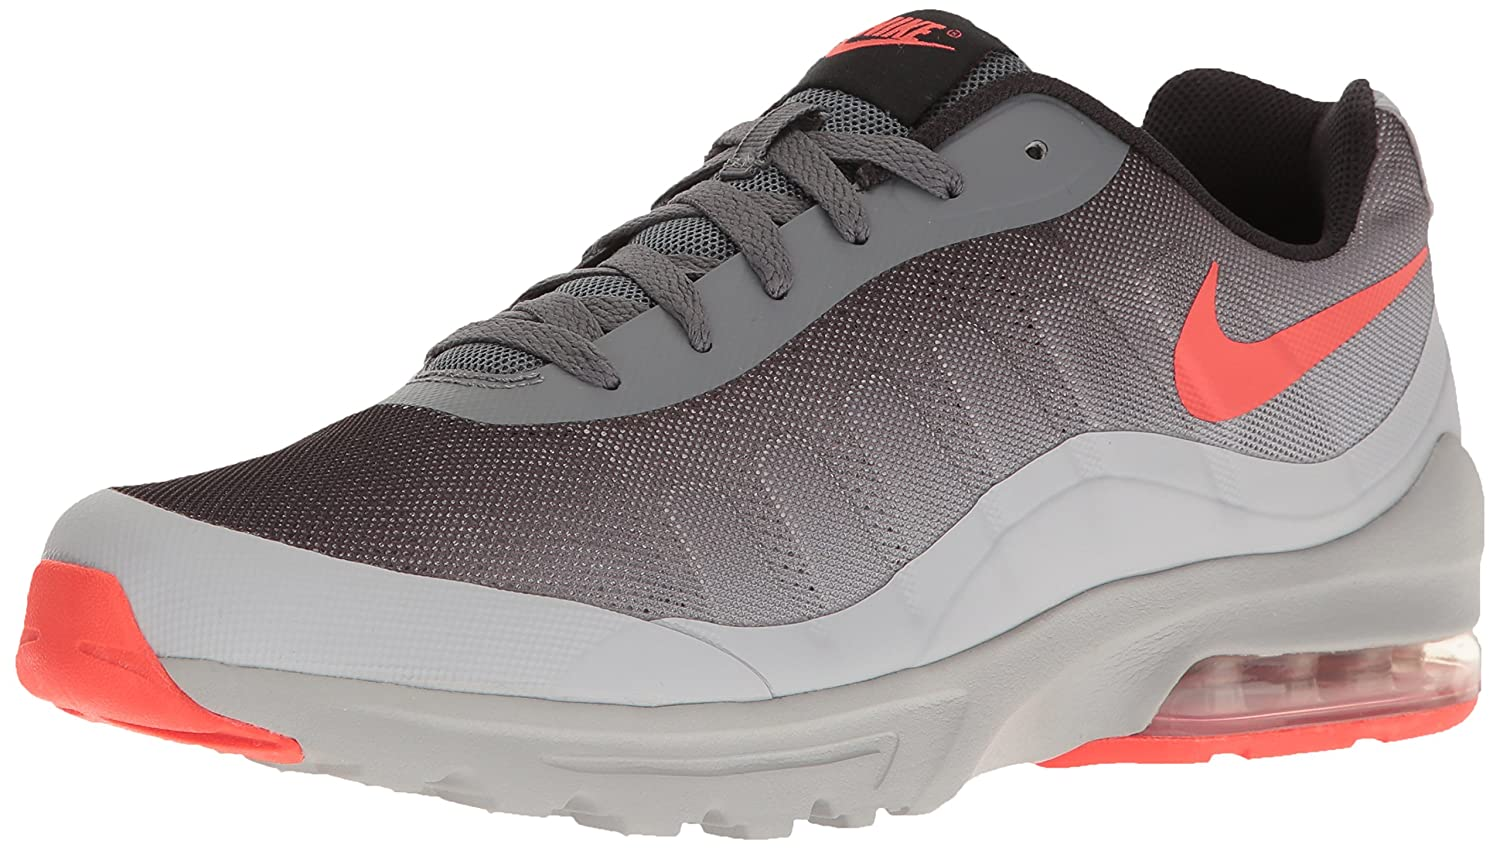 brand new d0b44 3473f Nike Men s Air Max Invigor Print Running Sneakers from Finish Line   Amazon.co.uk  Shoes   Bags